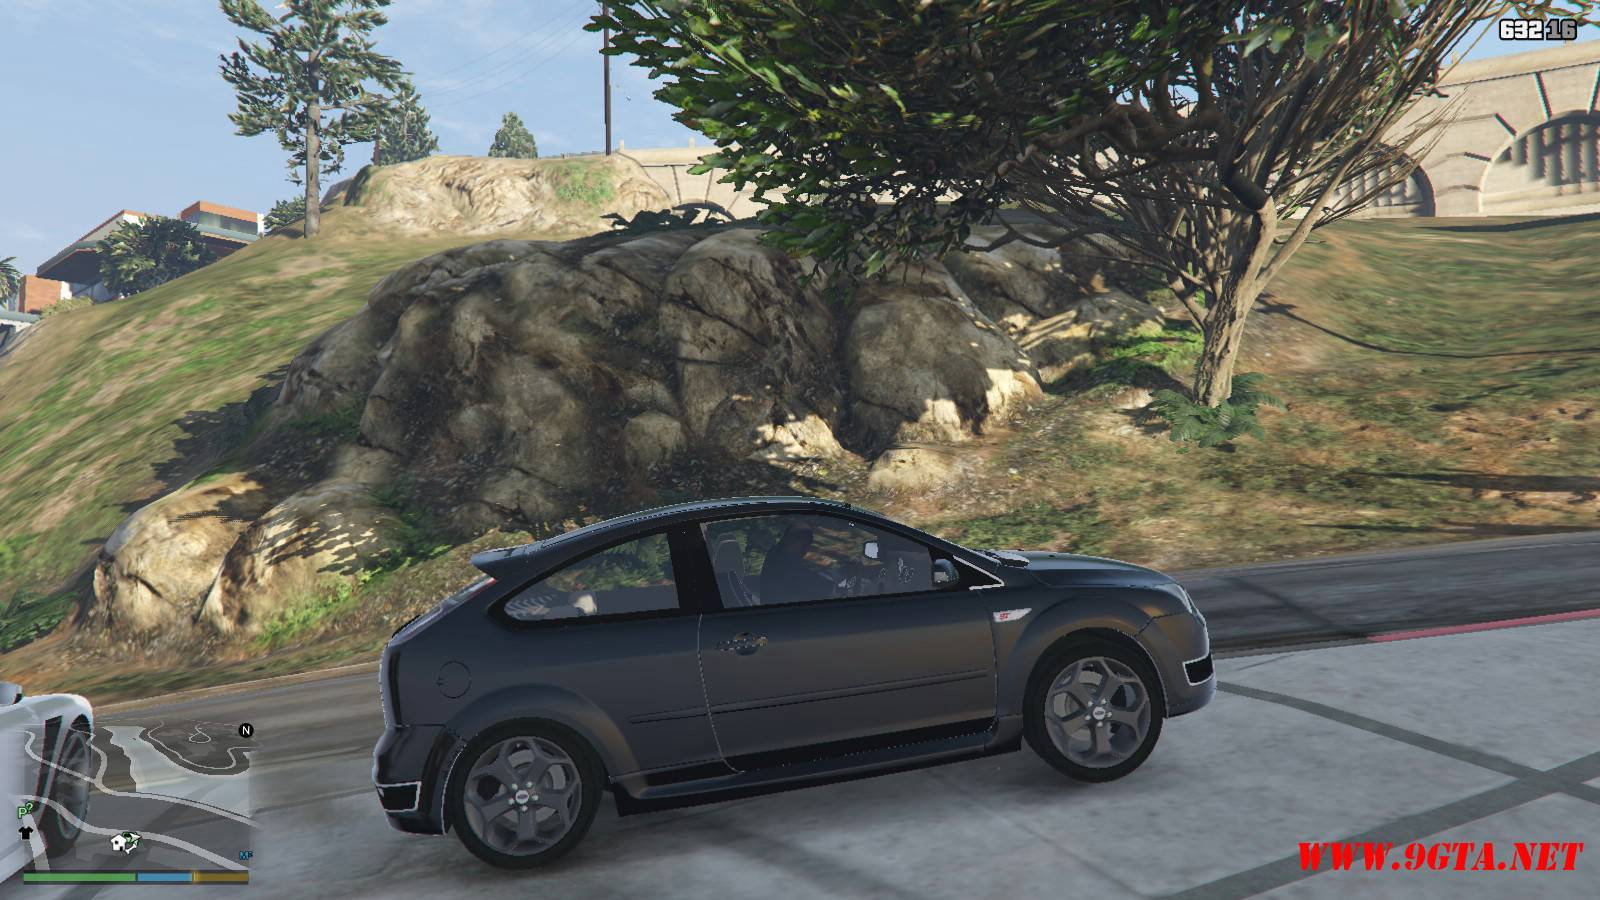 2006 Ford Focus ST Mod For GTA5 (8)